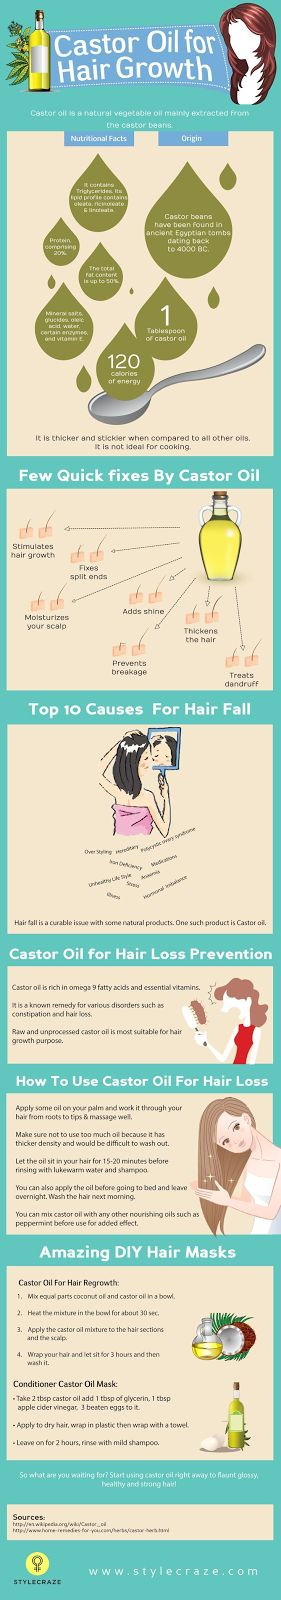 Castor Oil for Hair Growth                                                                                                                                                                                 More